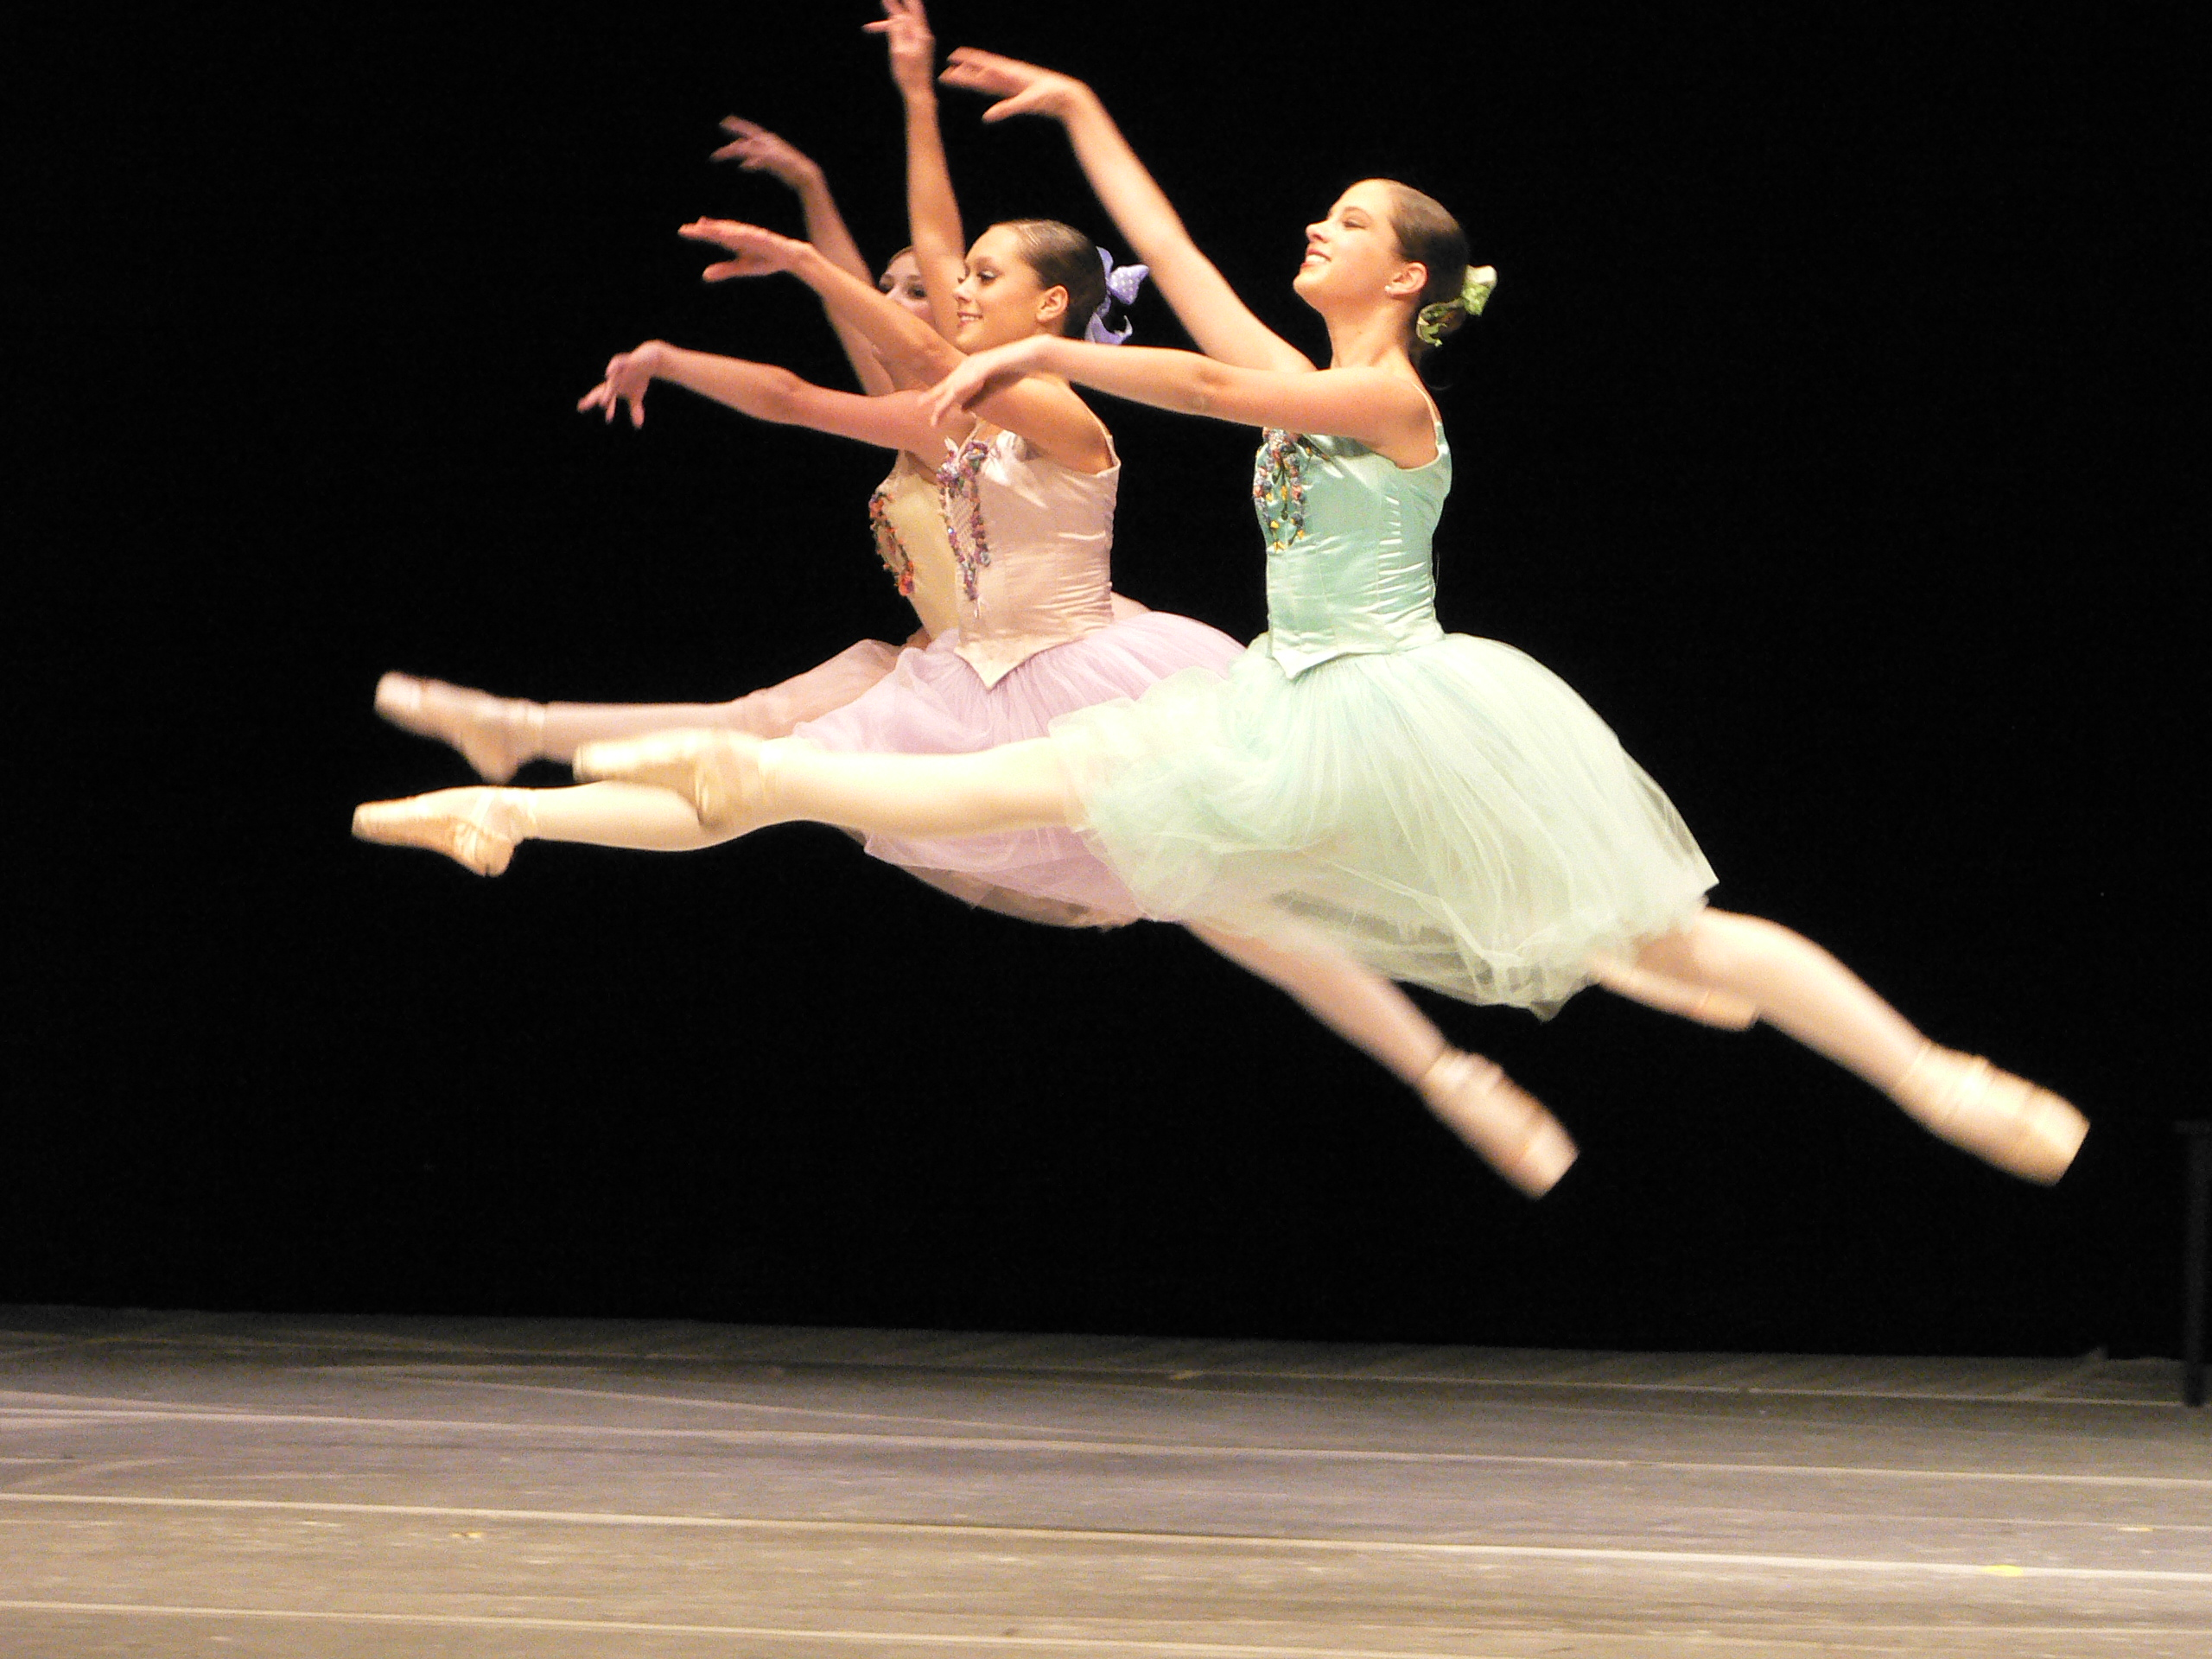 grand jete ballet dancers leaping